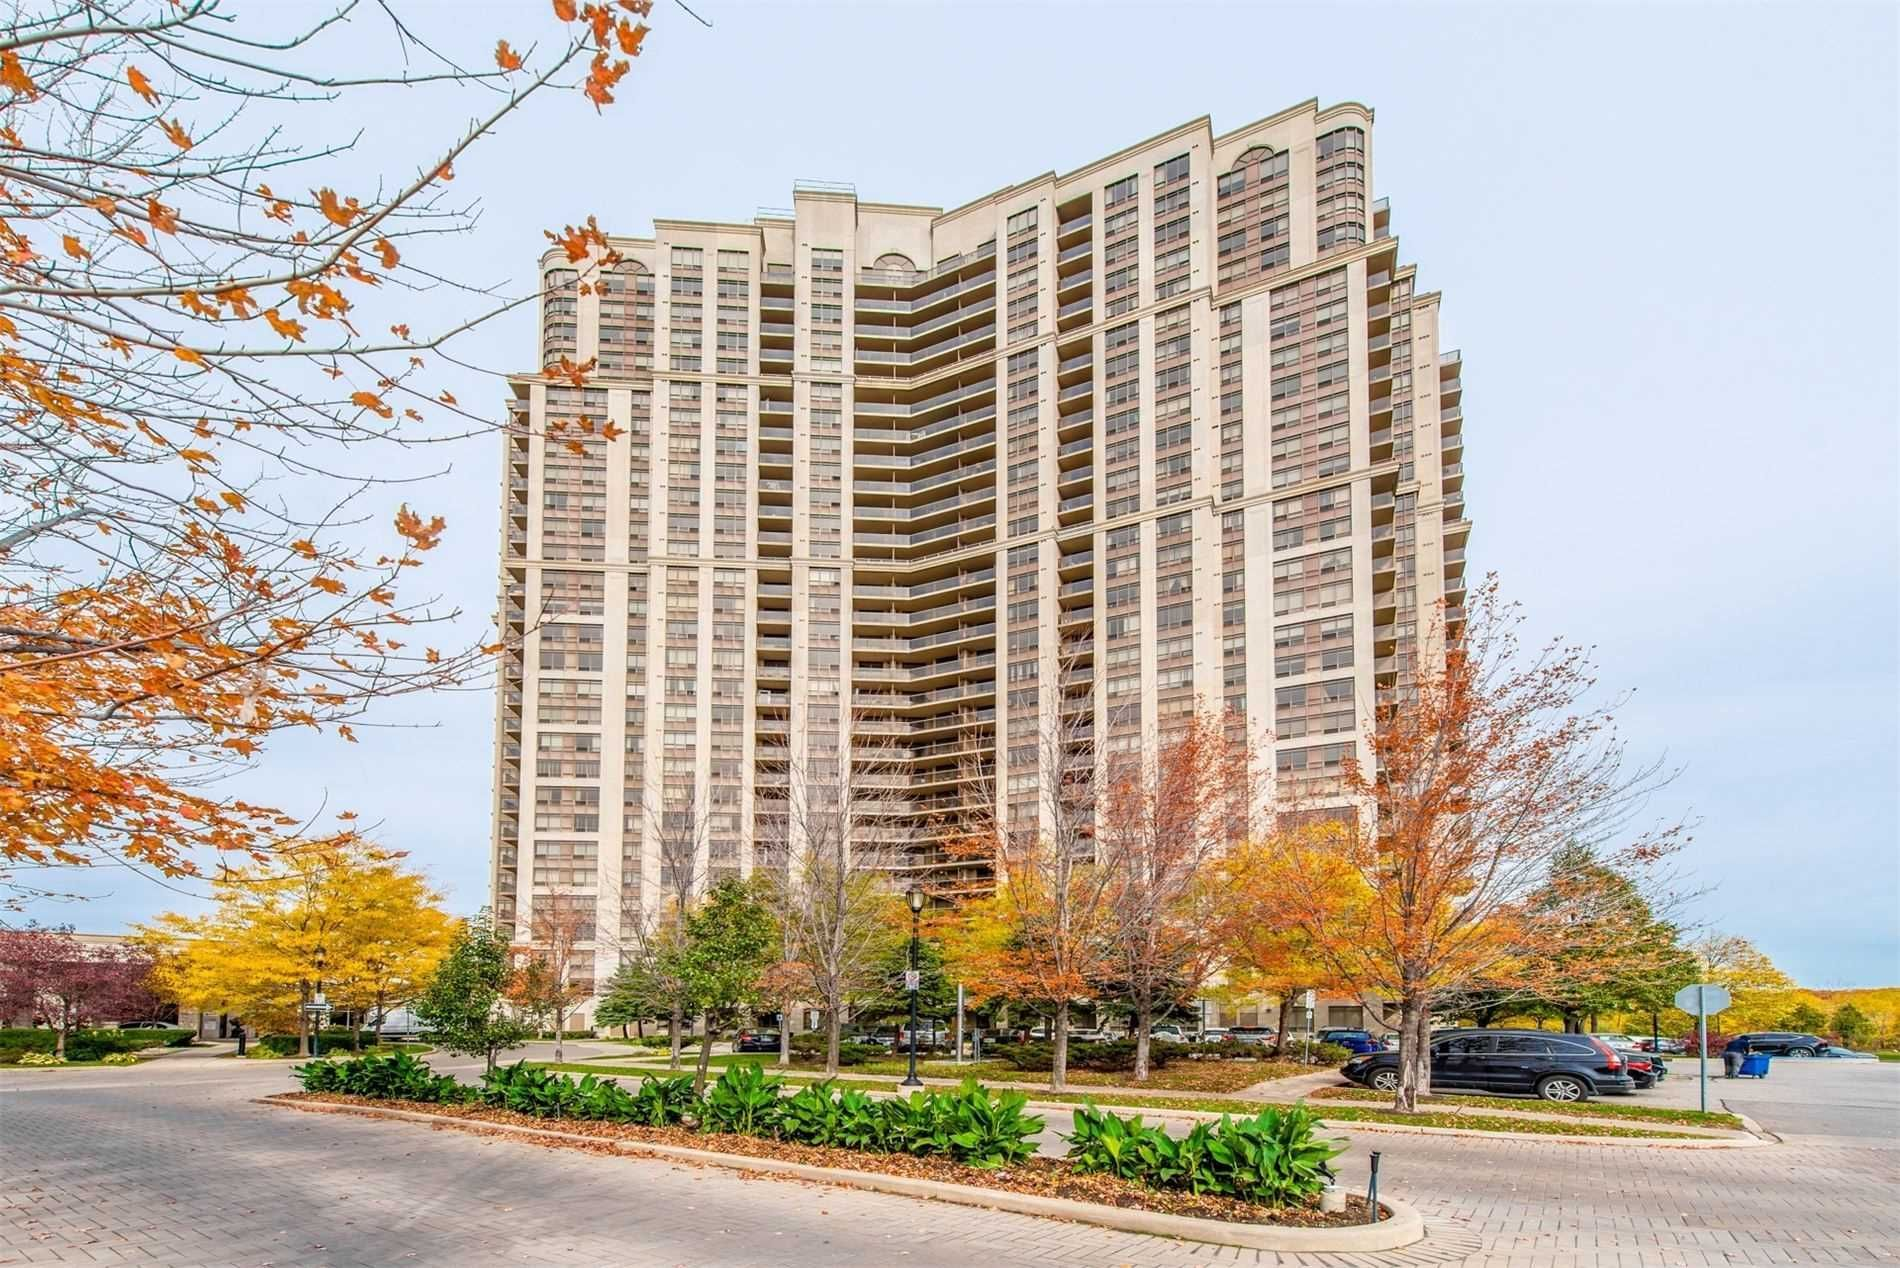 700 Humberwood Blvd. This condo at Mansions of Humberwood II is located in  Etobicoke, Toronto